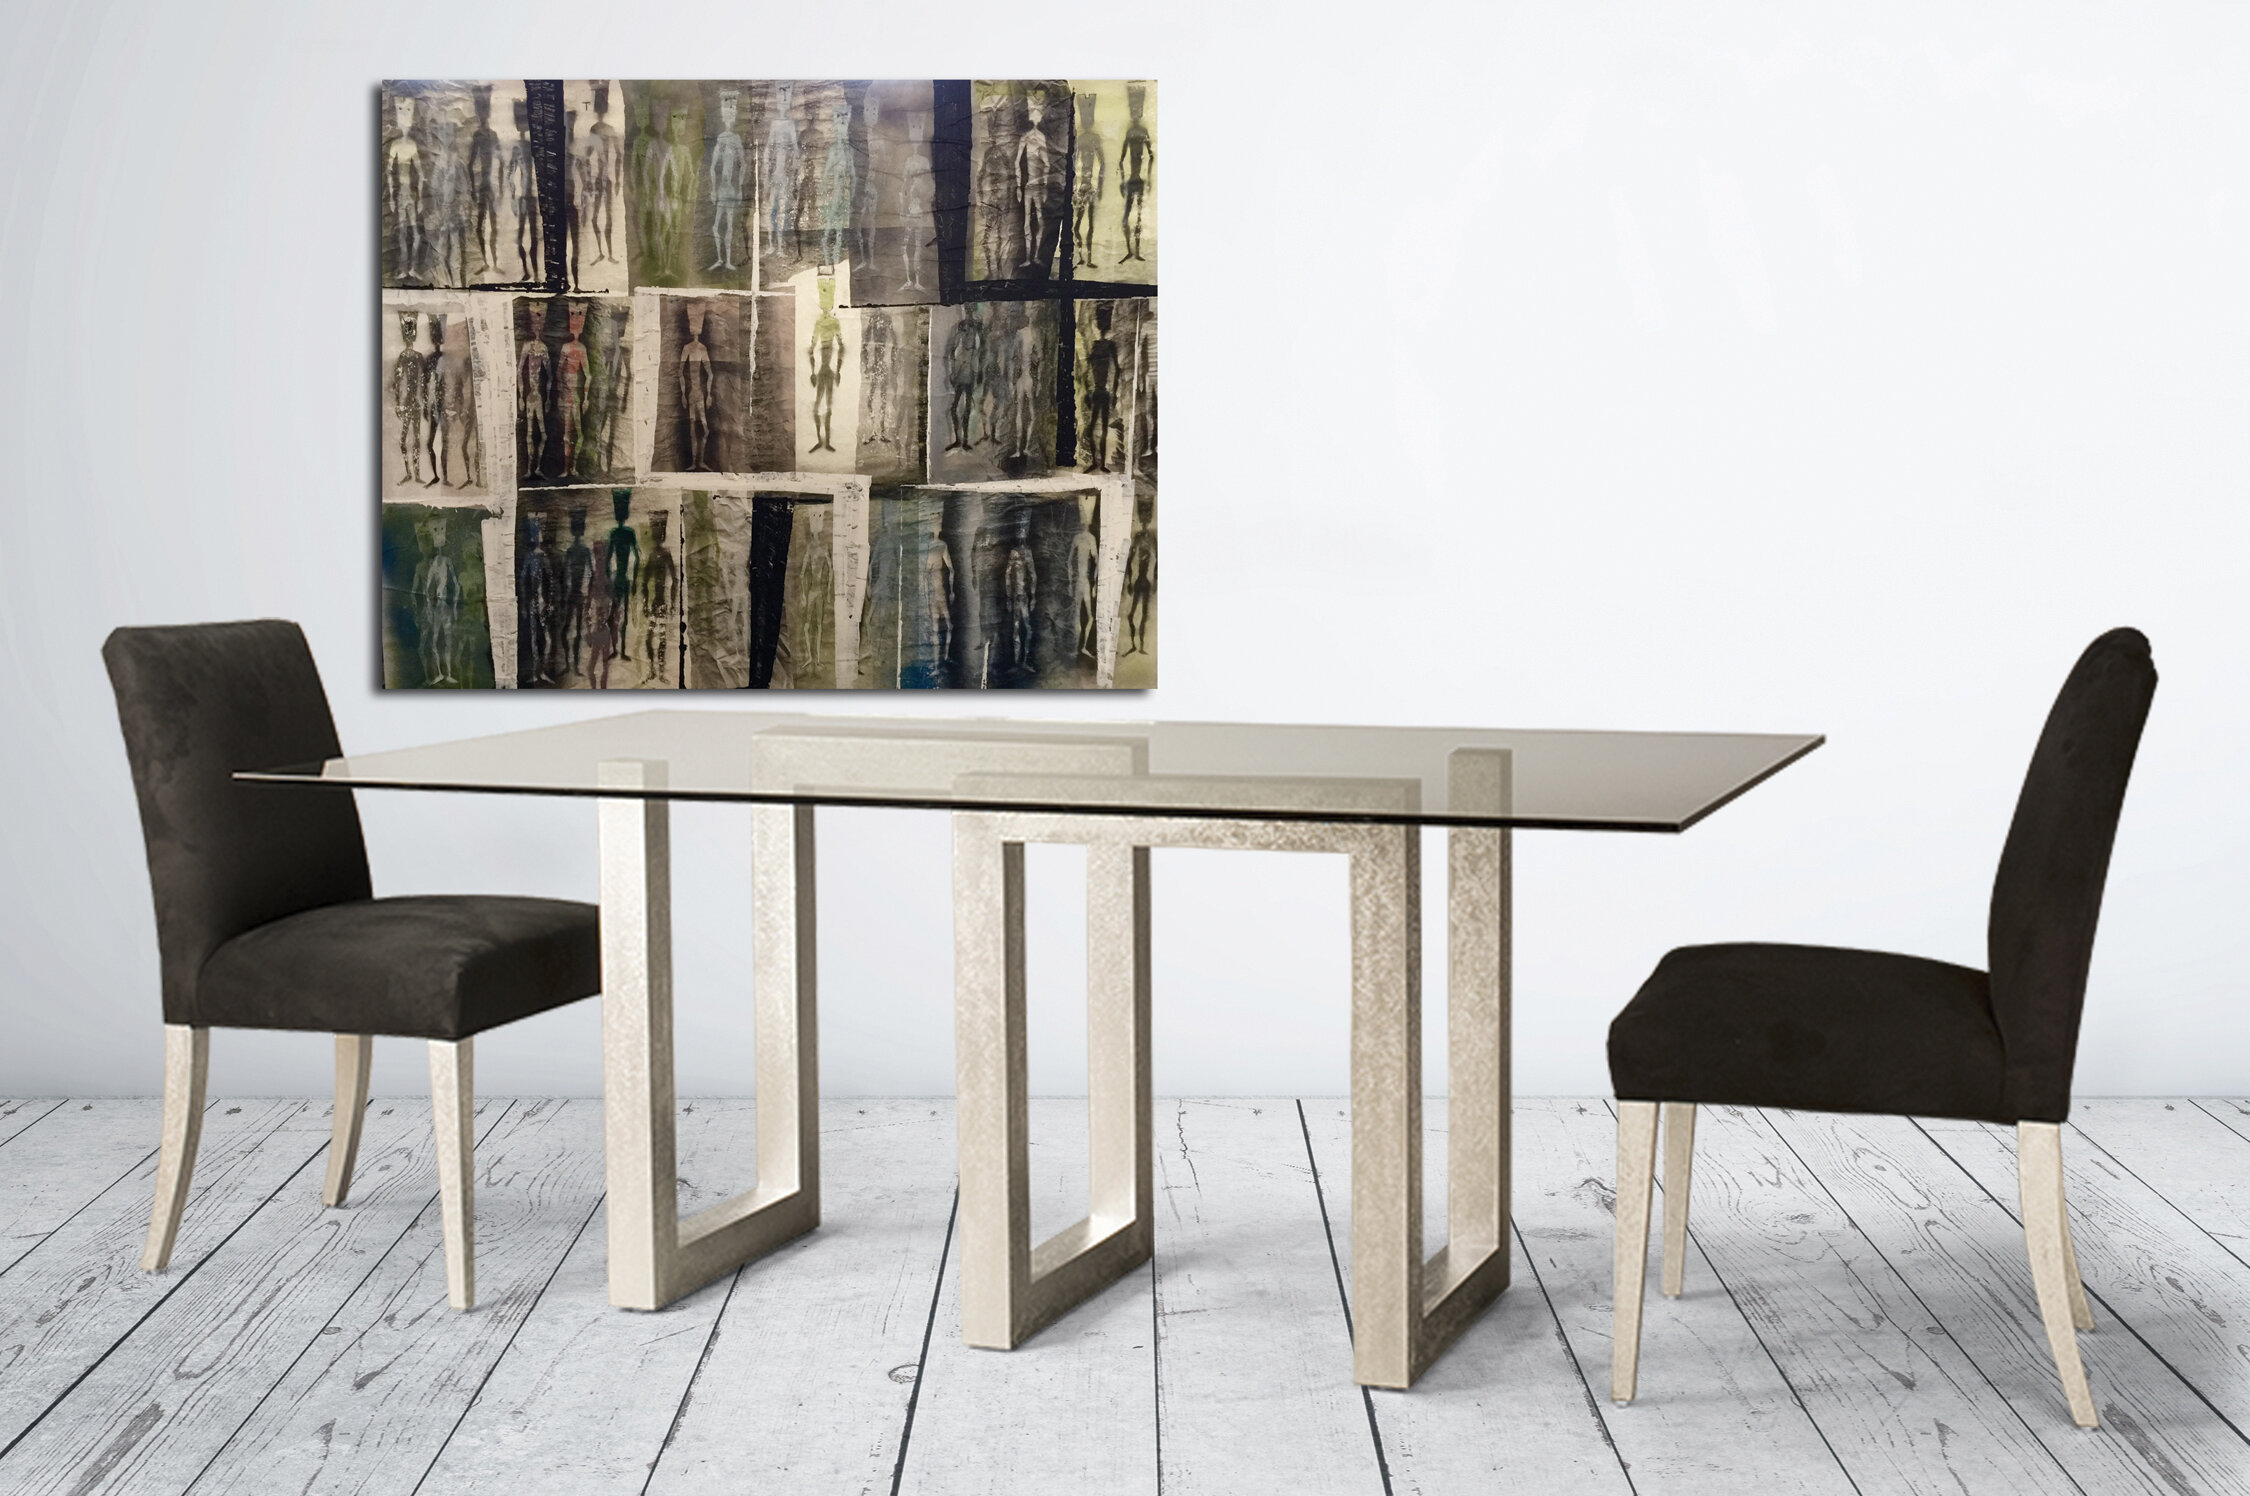 & Orren Ellis Reesa Rectangular Dining Table | Wayfair